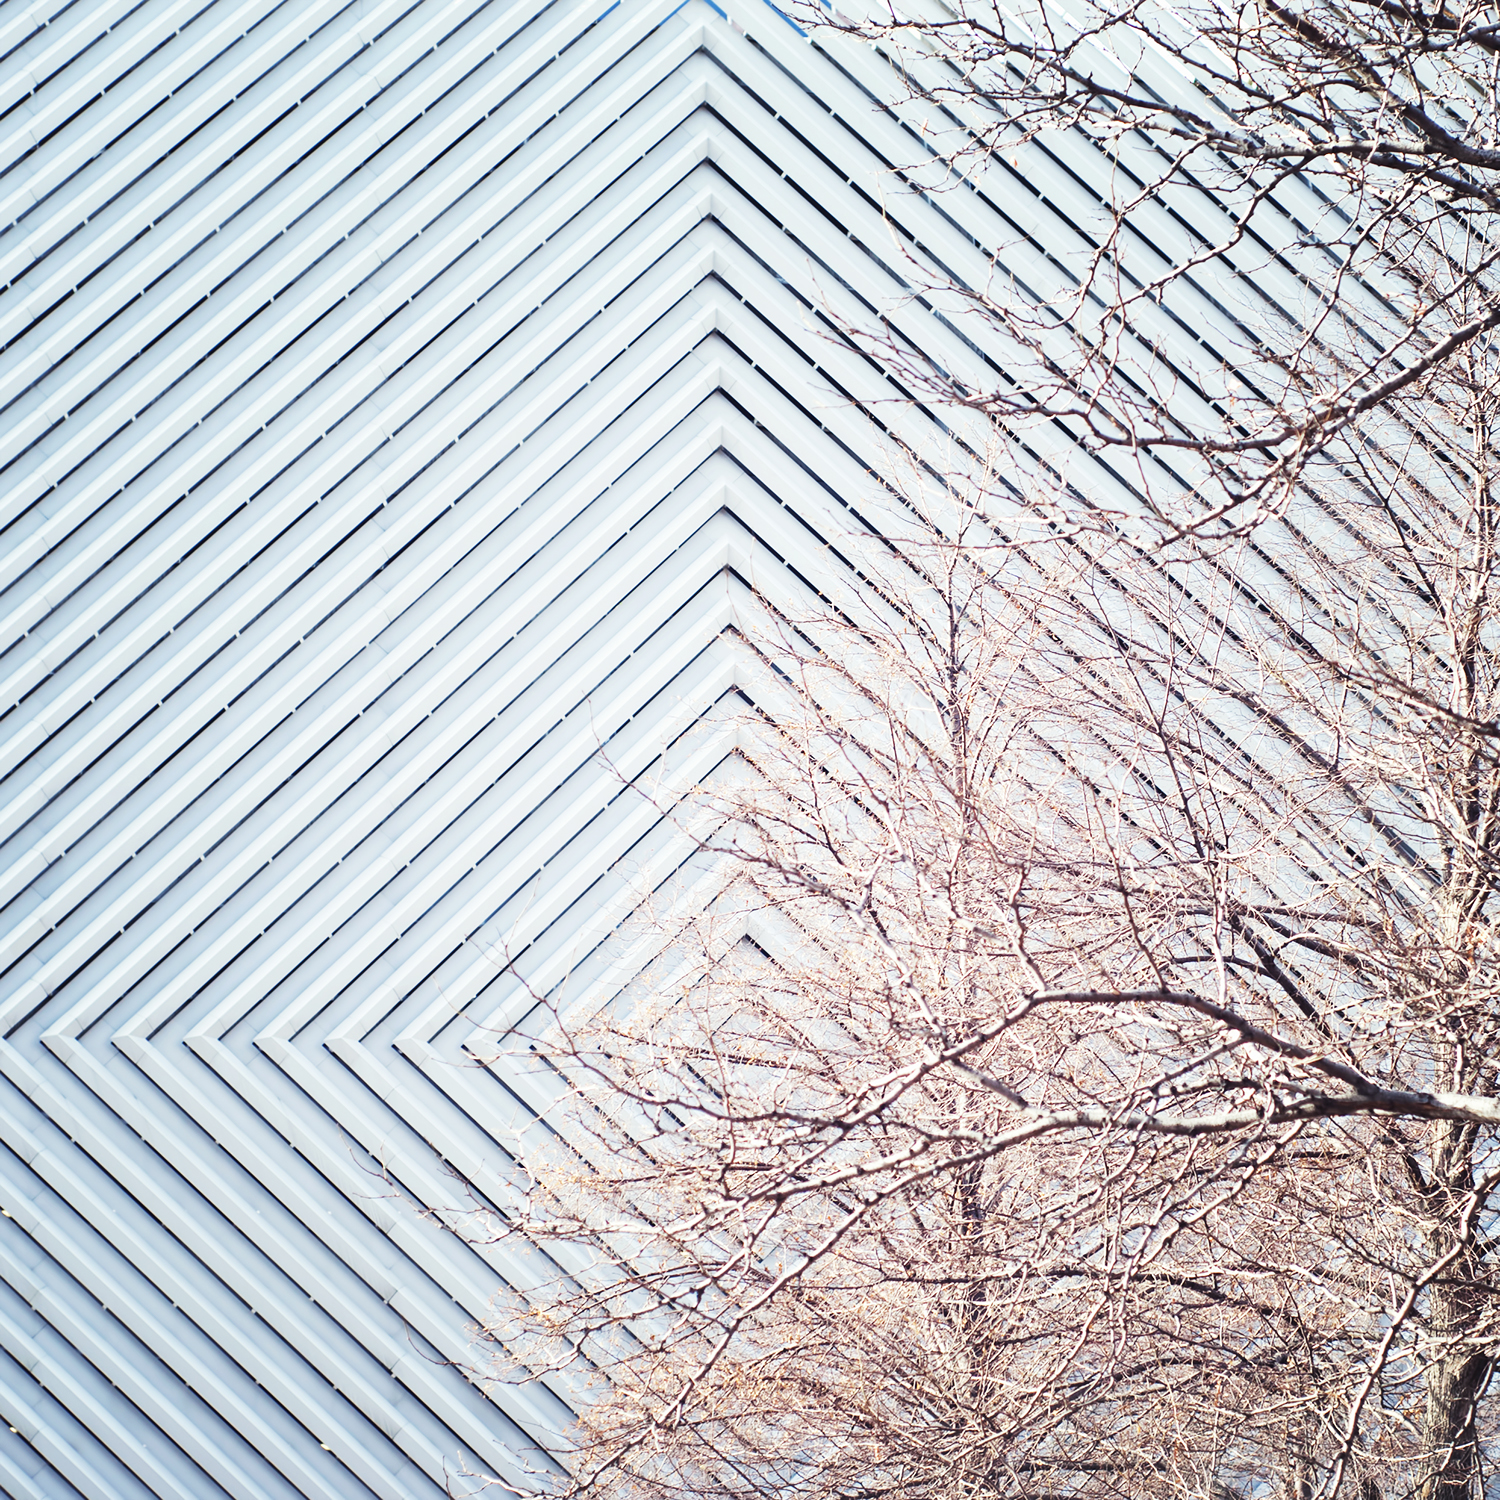 Tree Branches in front of Diamond Shaped Wall